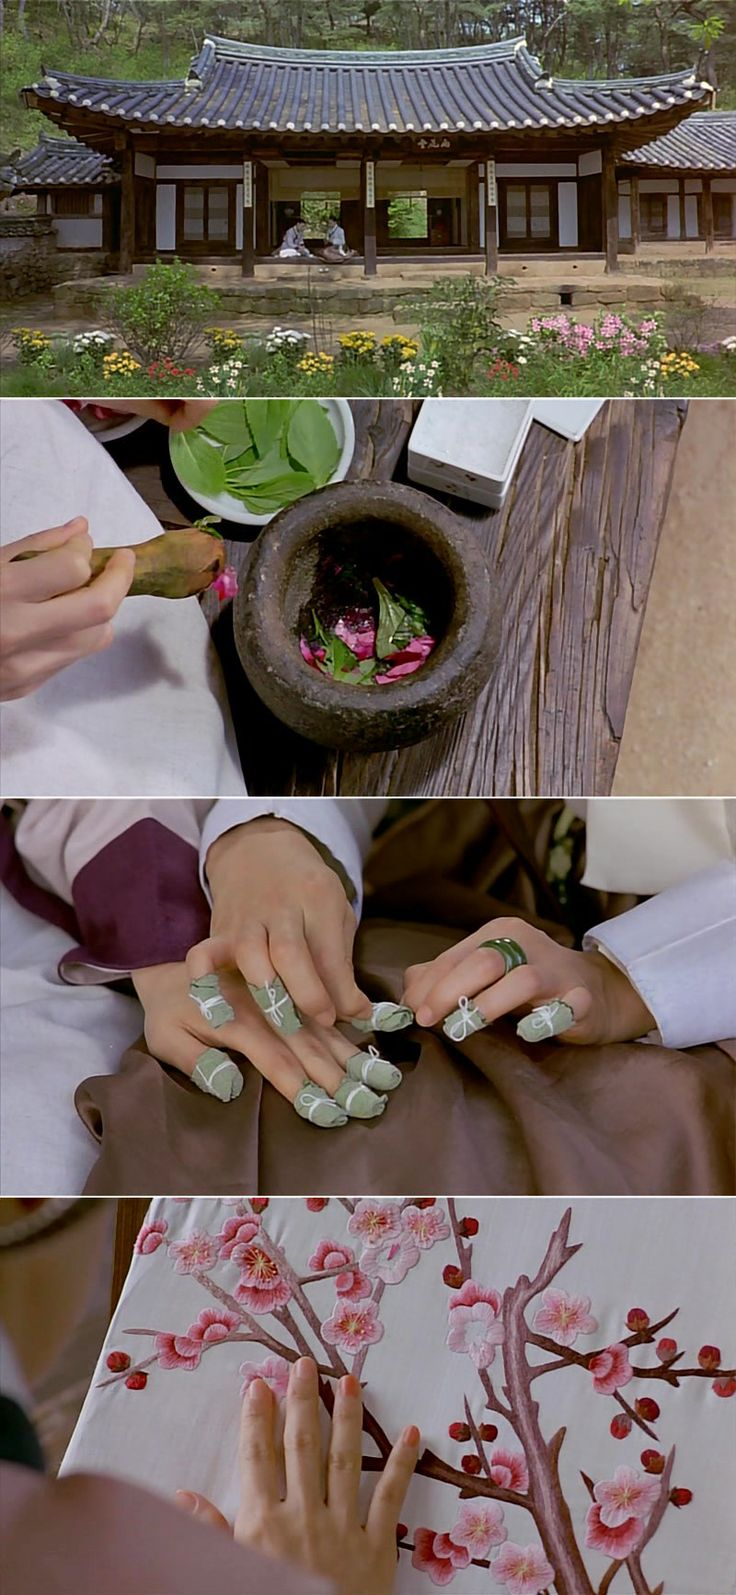 color her fingernails with balsam(Korean traditional polish made of flowers)